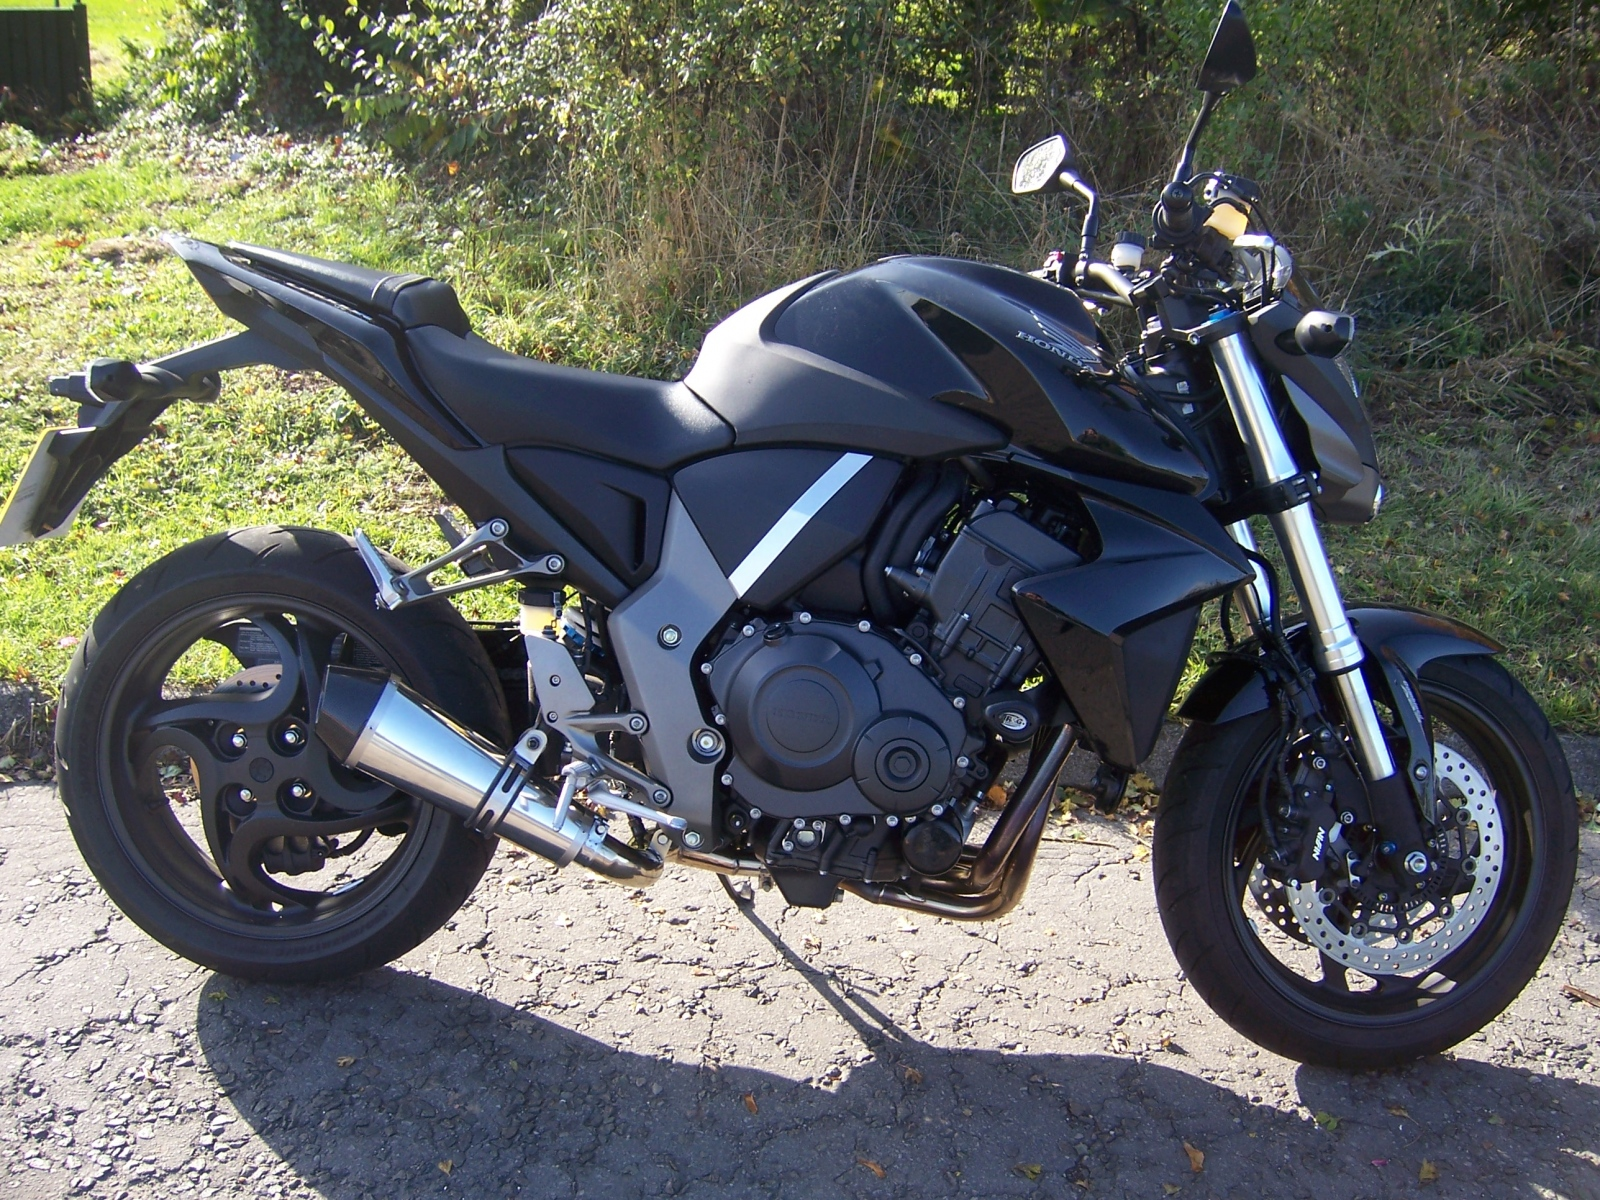 """Honda CB1000R <p>A16 Stainless Cone Exhaust with Carbon Cap Outlet</p><br/><br/><a href=""""https://a16roadnracesupplies.co.uk/product/a16-honda-exhausts/"""">Buy now!</a>"""